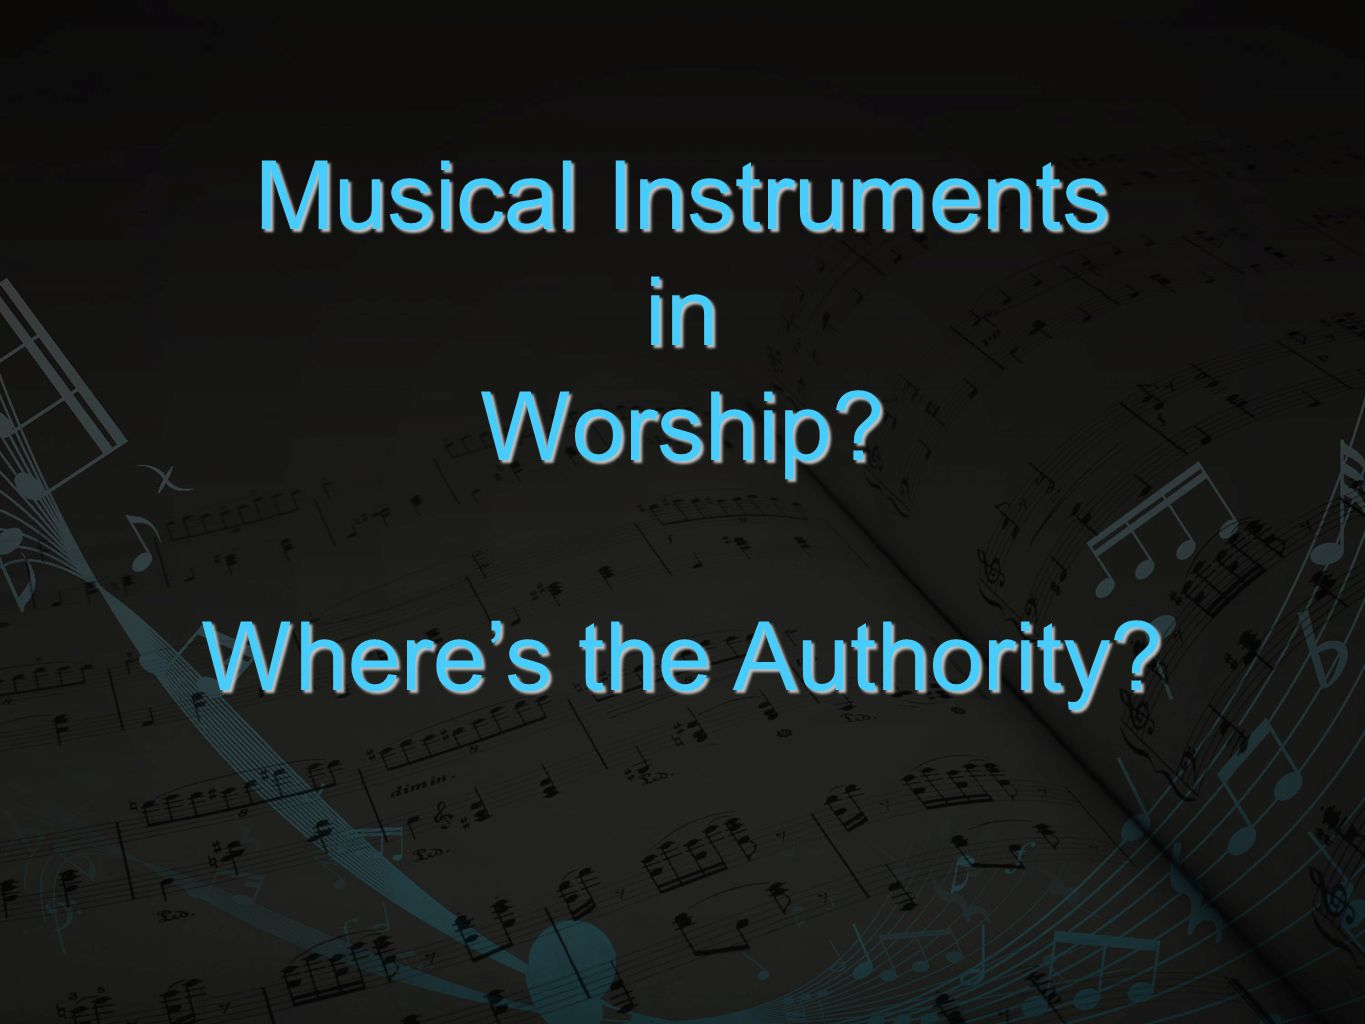 Musical Instruments inWorship? Where's the Authority?